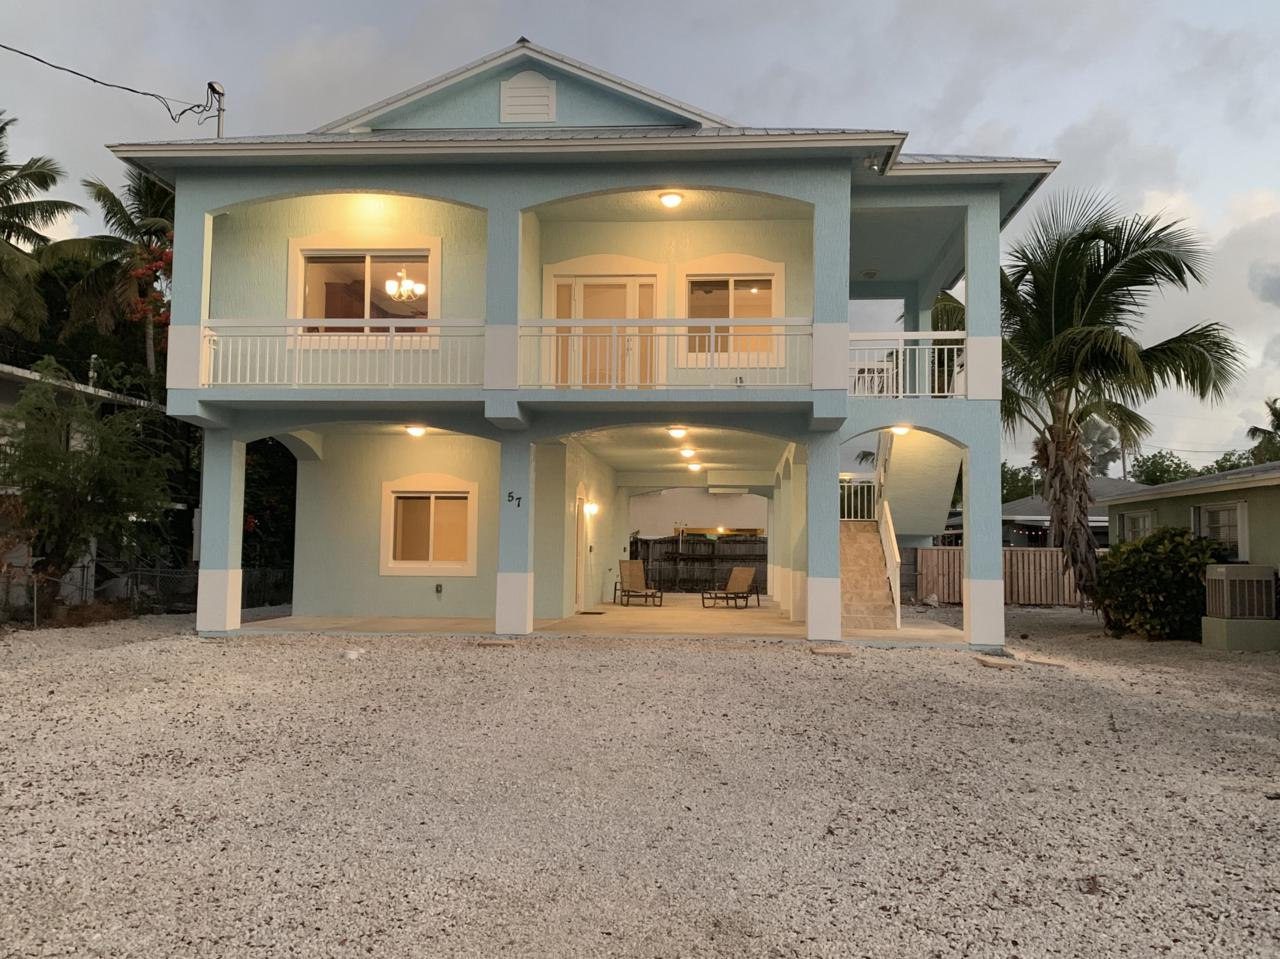 57 Bahama Avenue, Key Largo, FL 33037 (MLS #584422) :: Brenda Donnelly on map of sombrero beach, map of north ft myers, map of everglades np, map of biscayne park, map of st. marks, map of opa locka, map of big coppitt key, map of rainbow river, map of north bay village, map of indian key, map of glades county, map of diamonds, map of little conch key, map of pelican key, map of keaton beach, map of the keys, map of sigsbee park, map of pahokee, map of virginia key, map of cape kennedy,